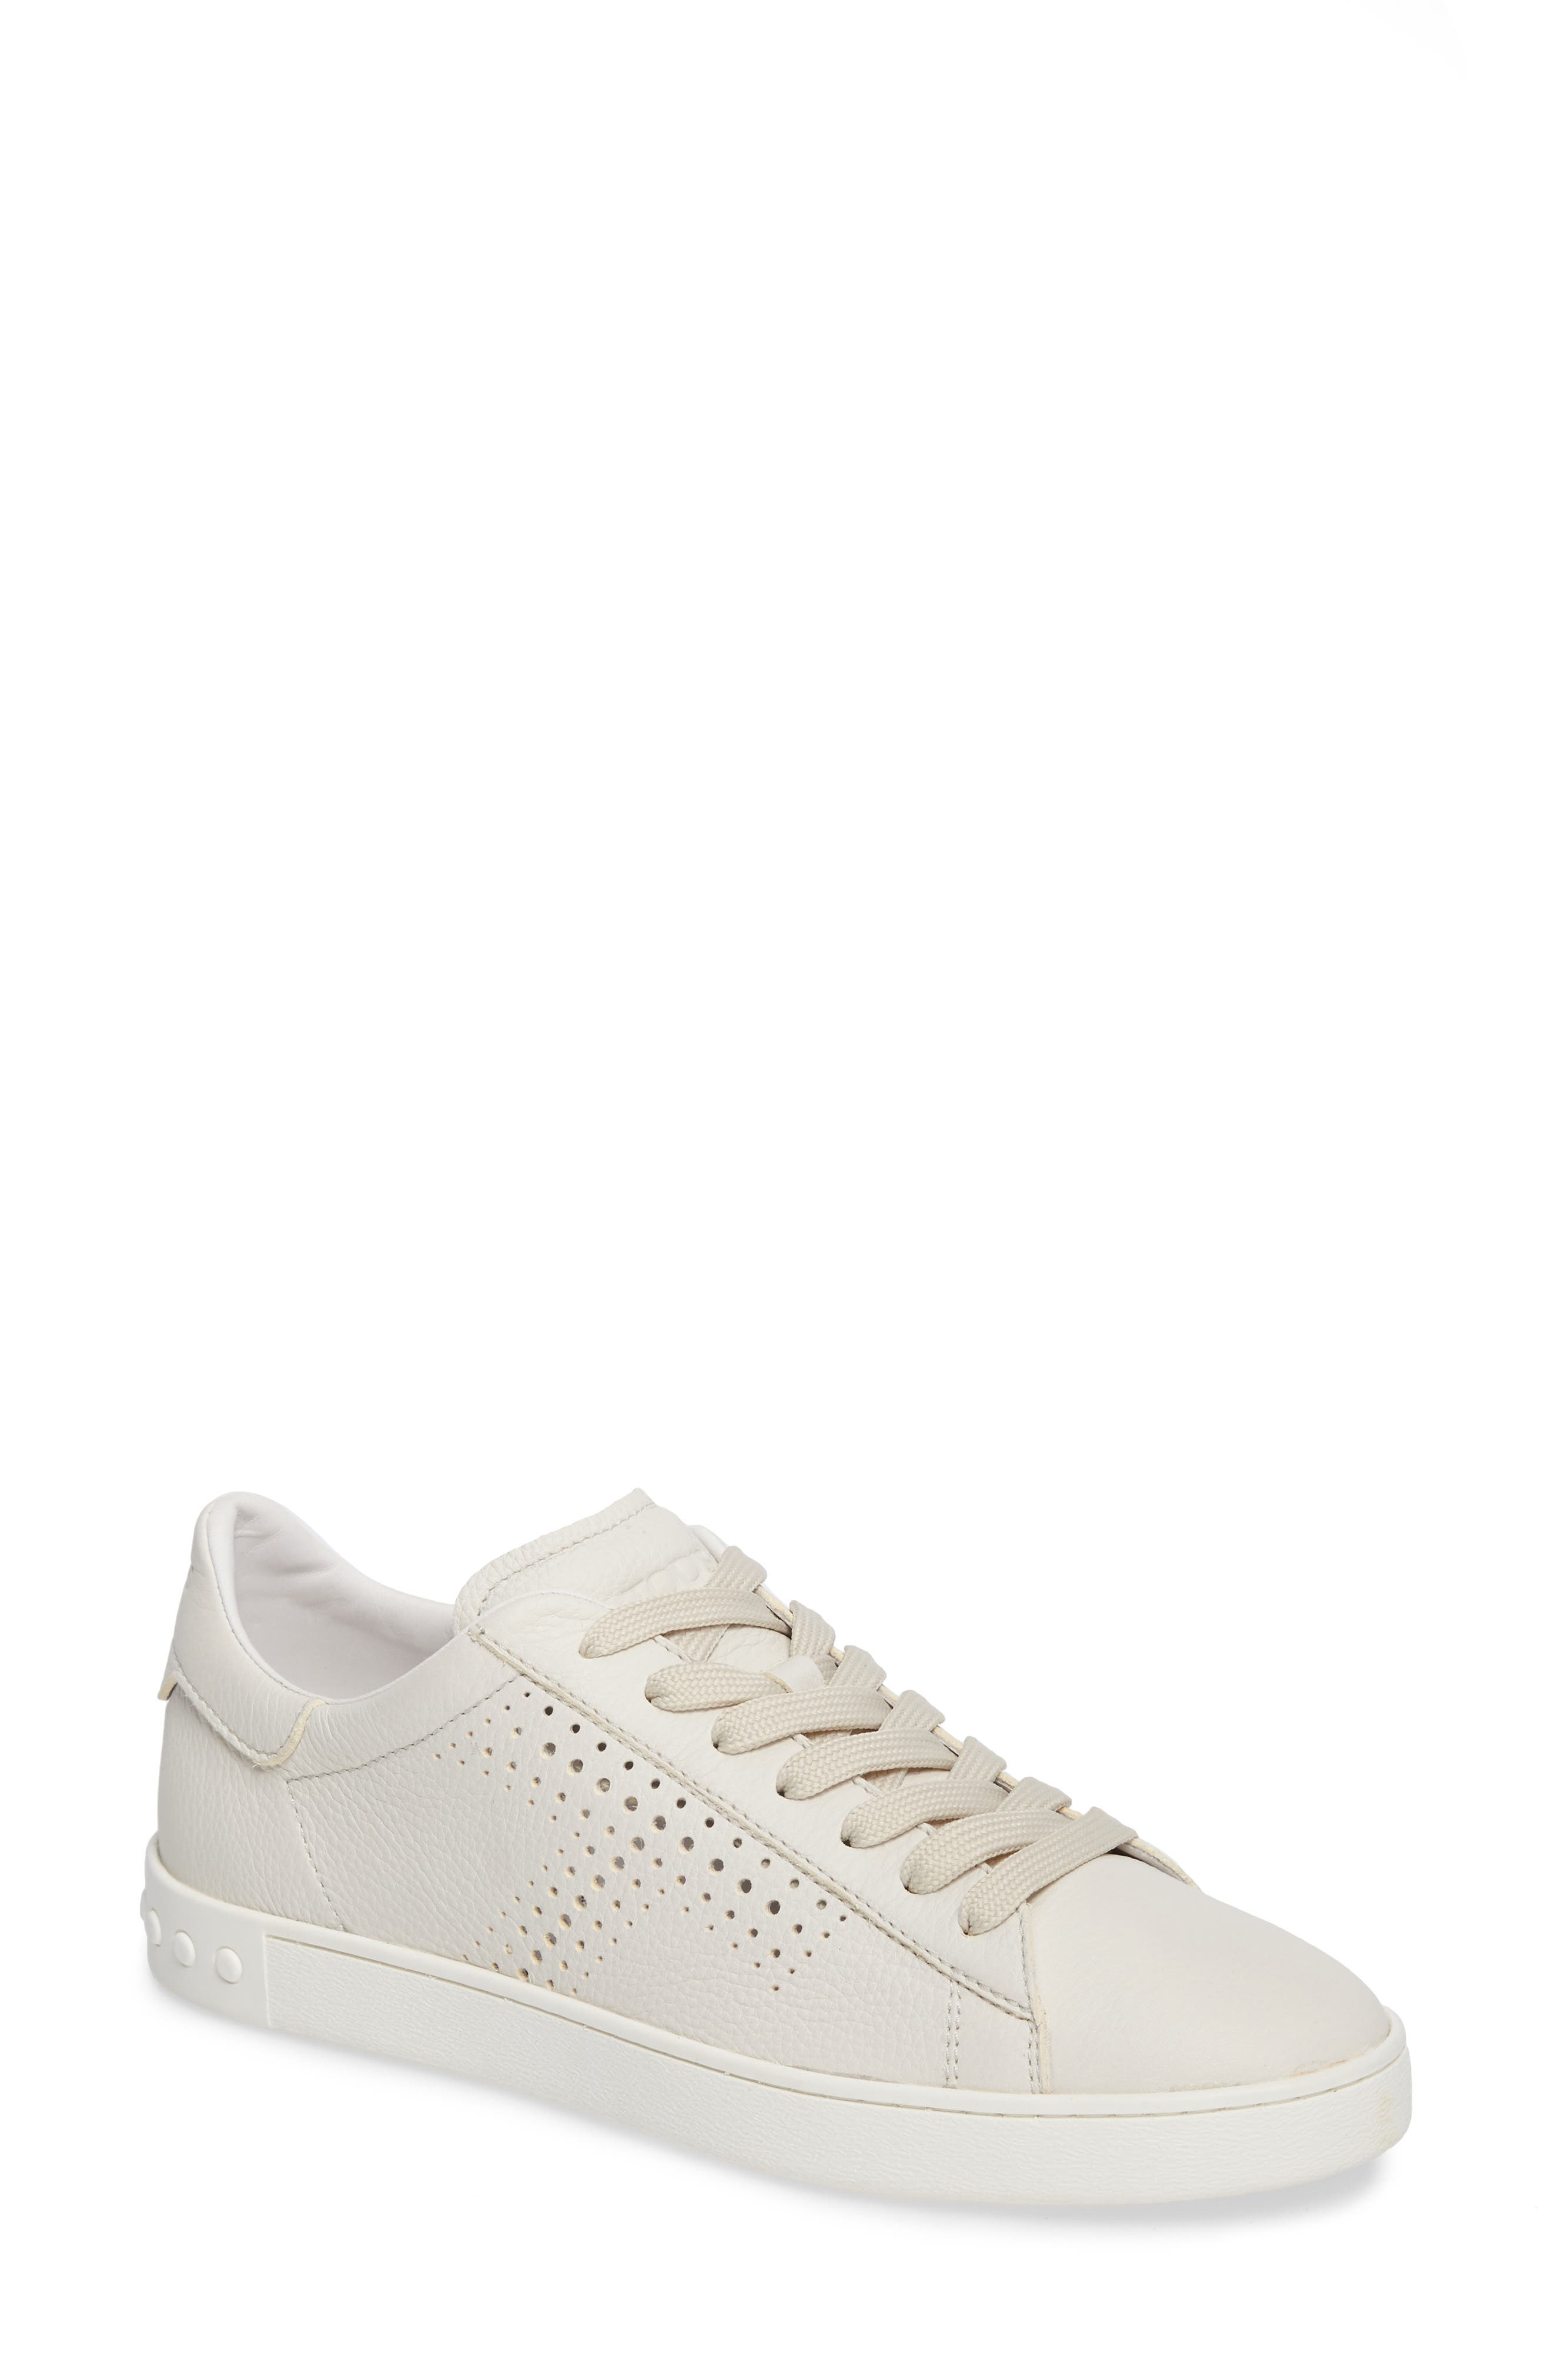 Alternate Image 1 Selected - Tods Perforated T Sneaker (Women)